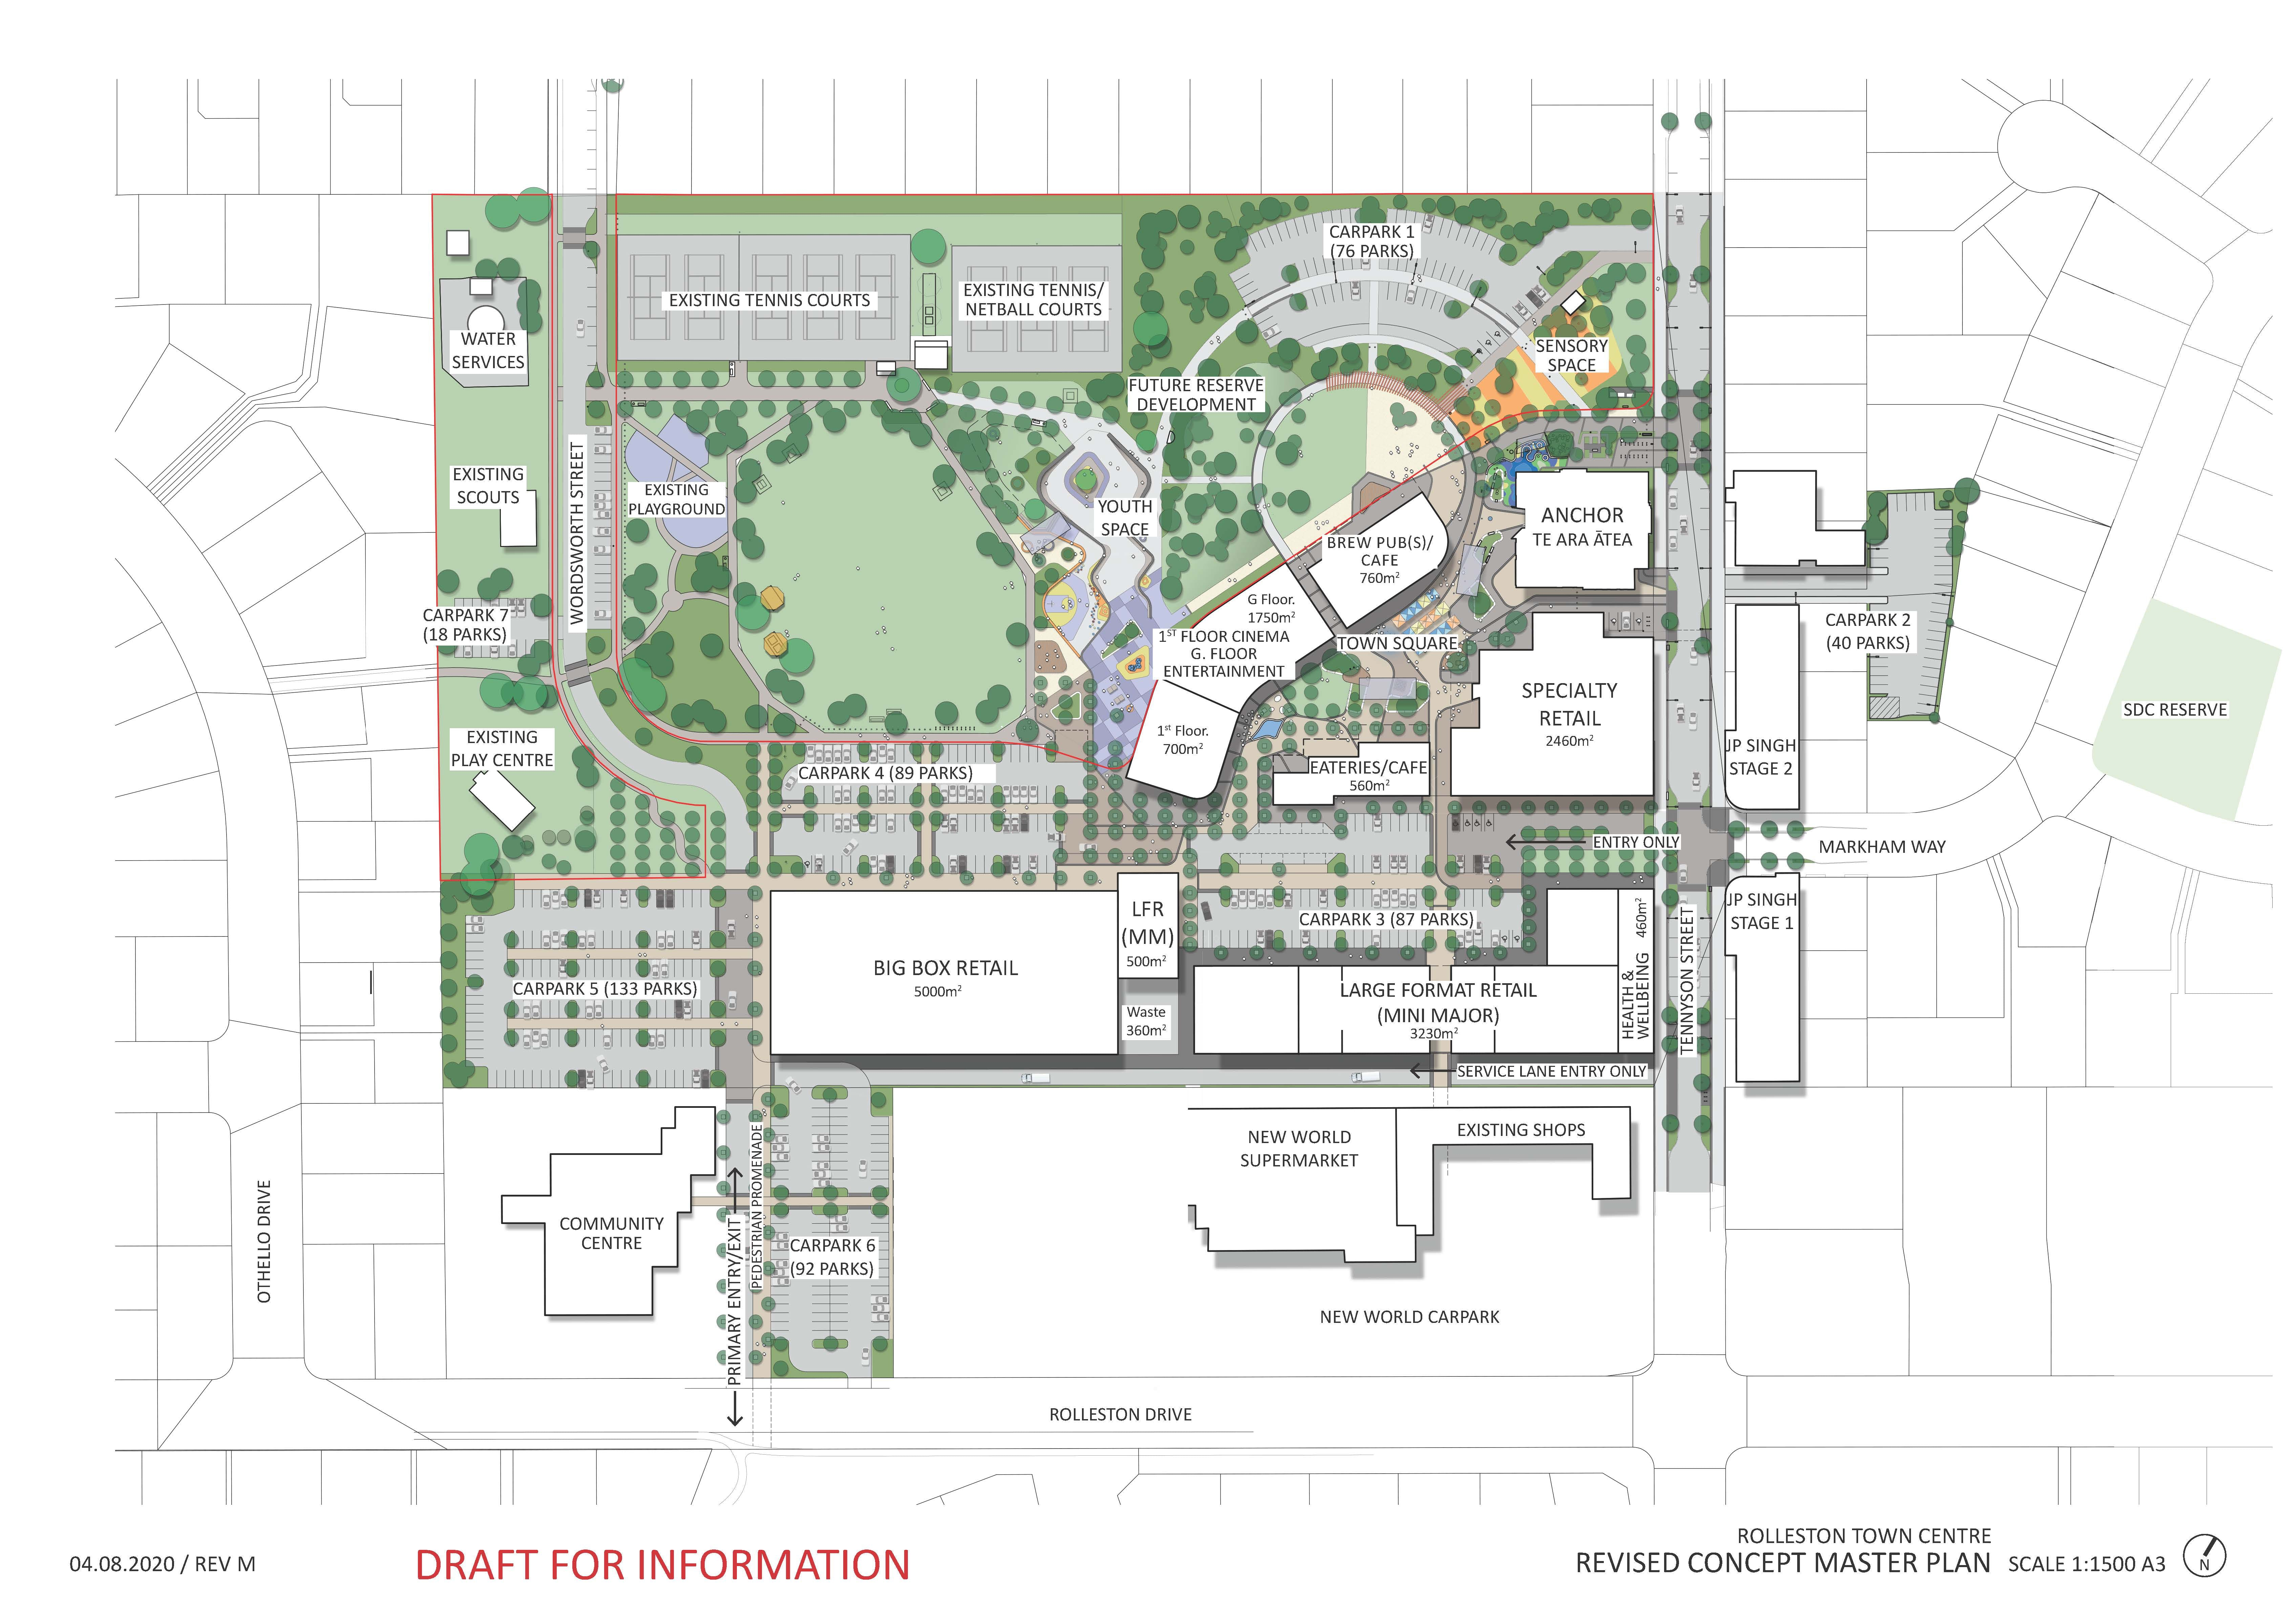 Overview of proposed Rolleston town centre development